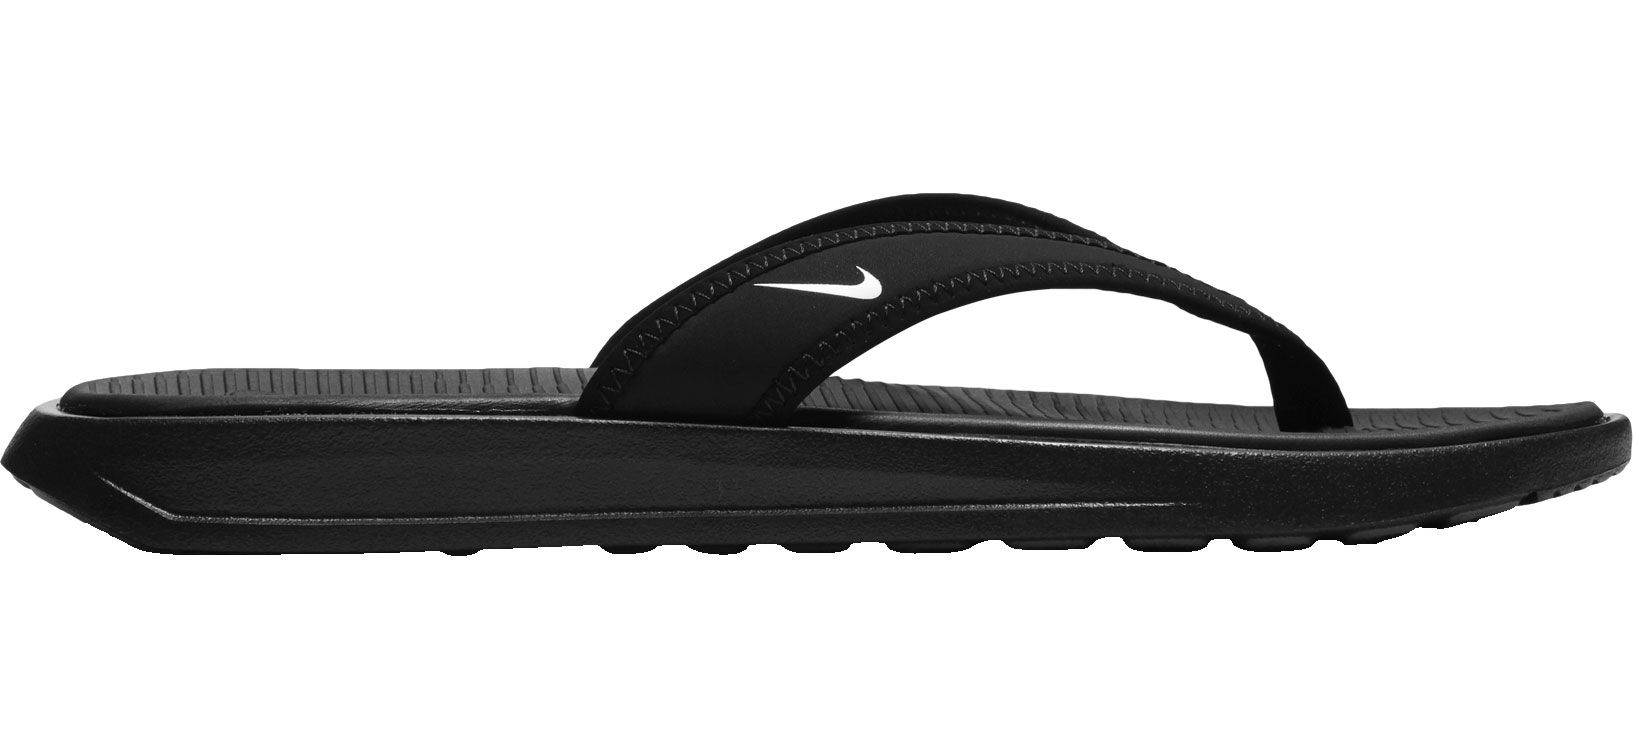 official site Women's Nike Ultra Celso Thong Flip-Flops new styles sale online buy cheap enjoy latest collections cheap price YqvYZv9Zs